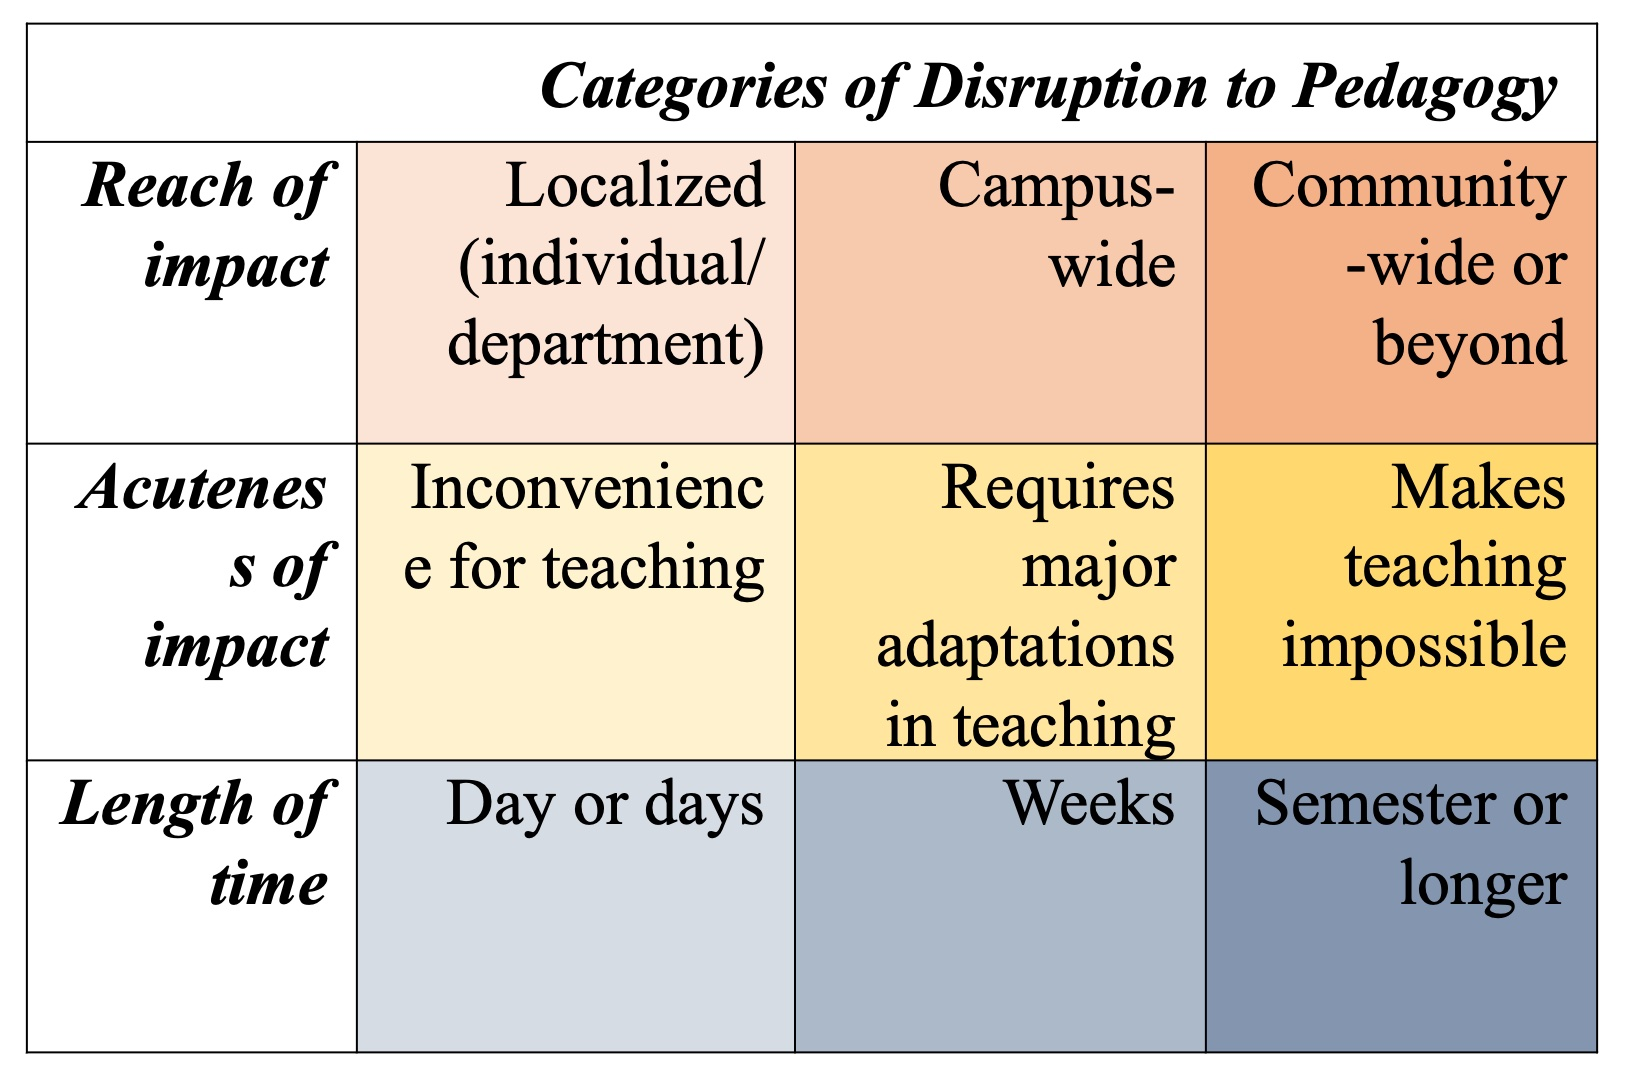 A table labeled Categories of Disruption to Pedagogy. Three rows are labeled from top to bottom: Reach of Impact, Acuteness of Impact, and Length of Time. The table has three columns which include descriptions for each row, left to right. Reach of impact row: Localized (individual/department), Campus-wide, and Community-wide or Beyond. Acuteness of Impact row: Inconvenience for Teaching, Requires major Adaptations in Teaching, and Makes Teaching Impossible. The last row, Length of Time: Day or Days, Weeks, and Semester or Longer.